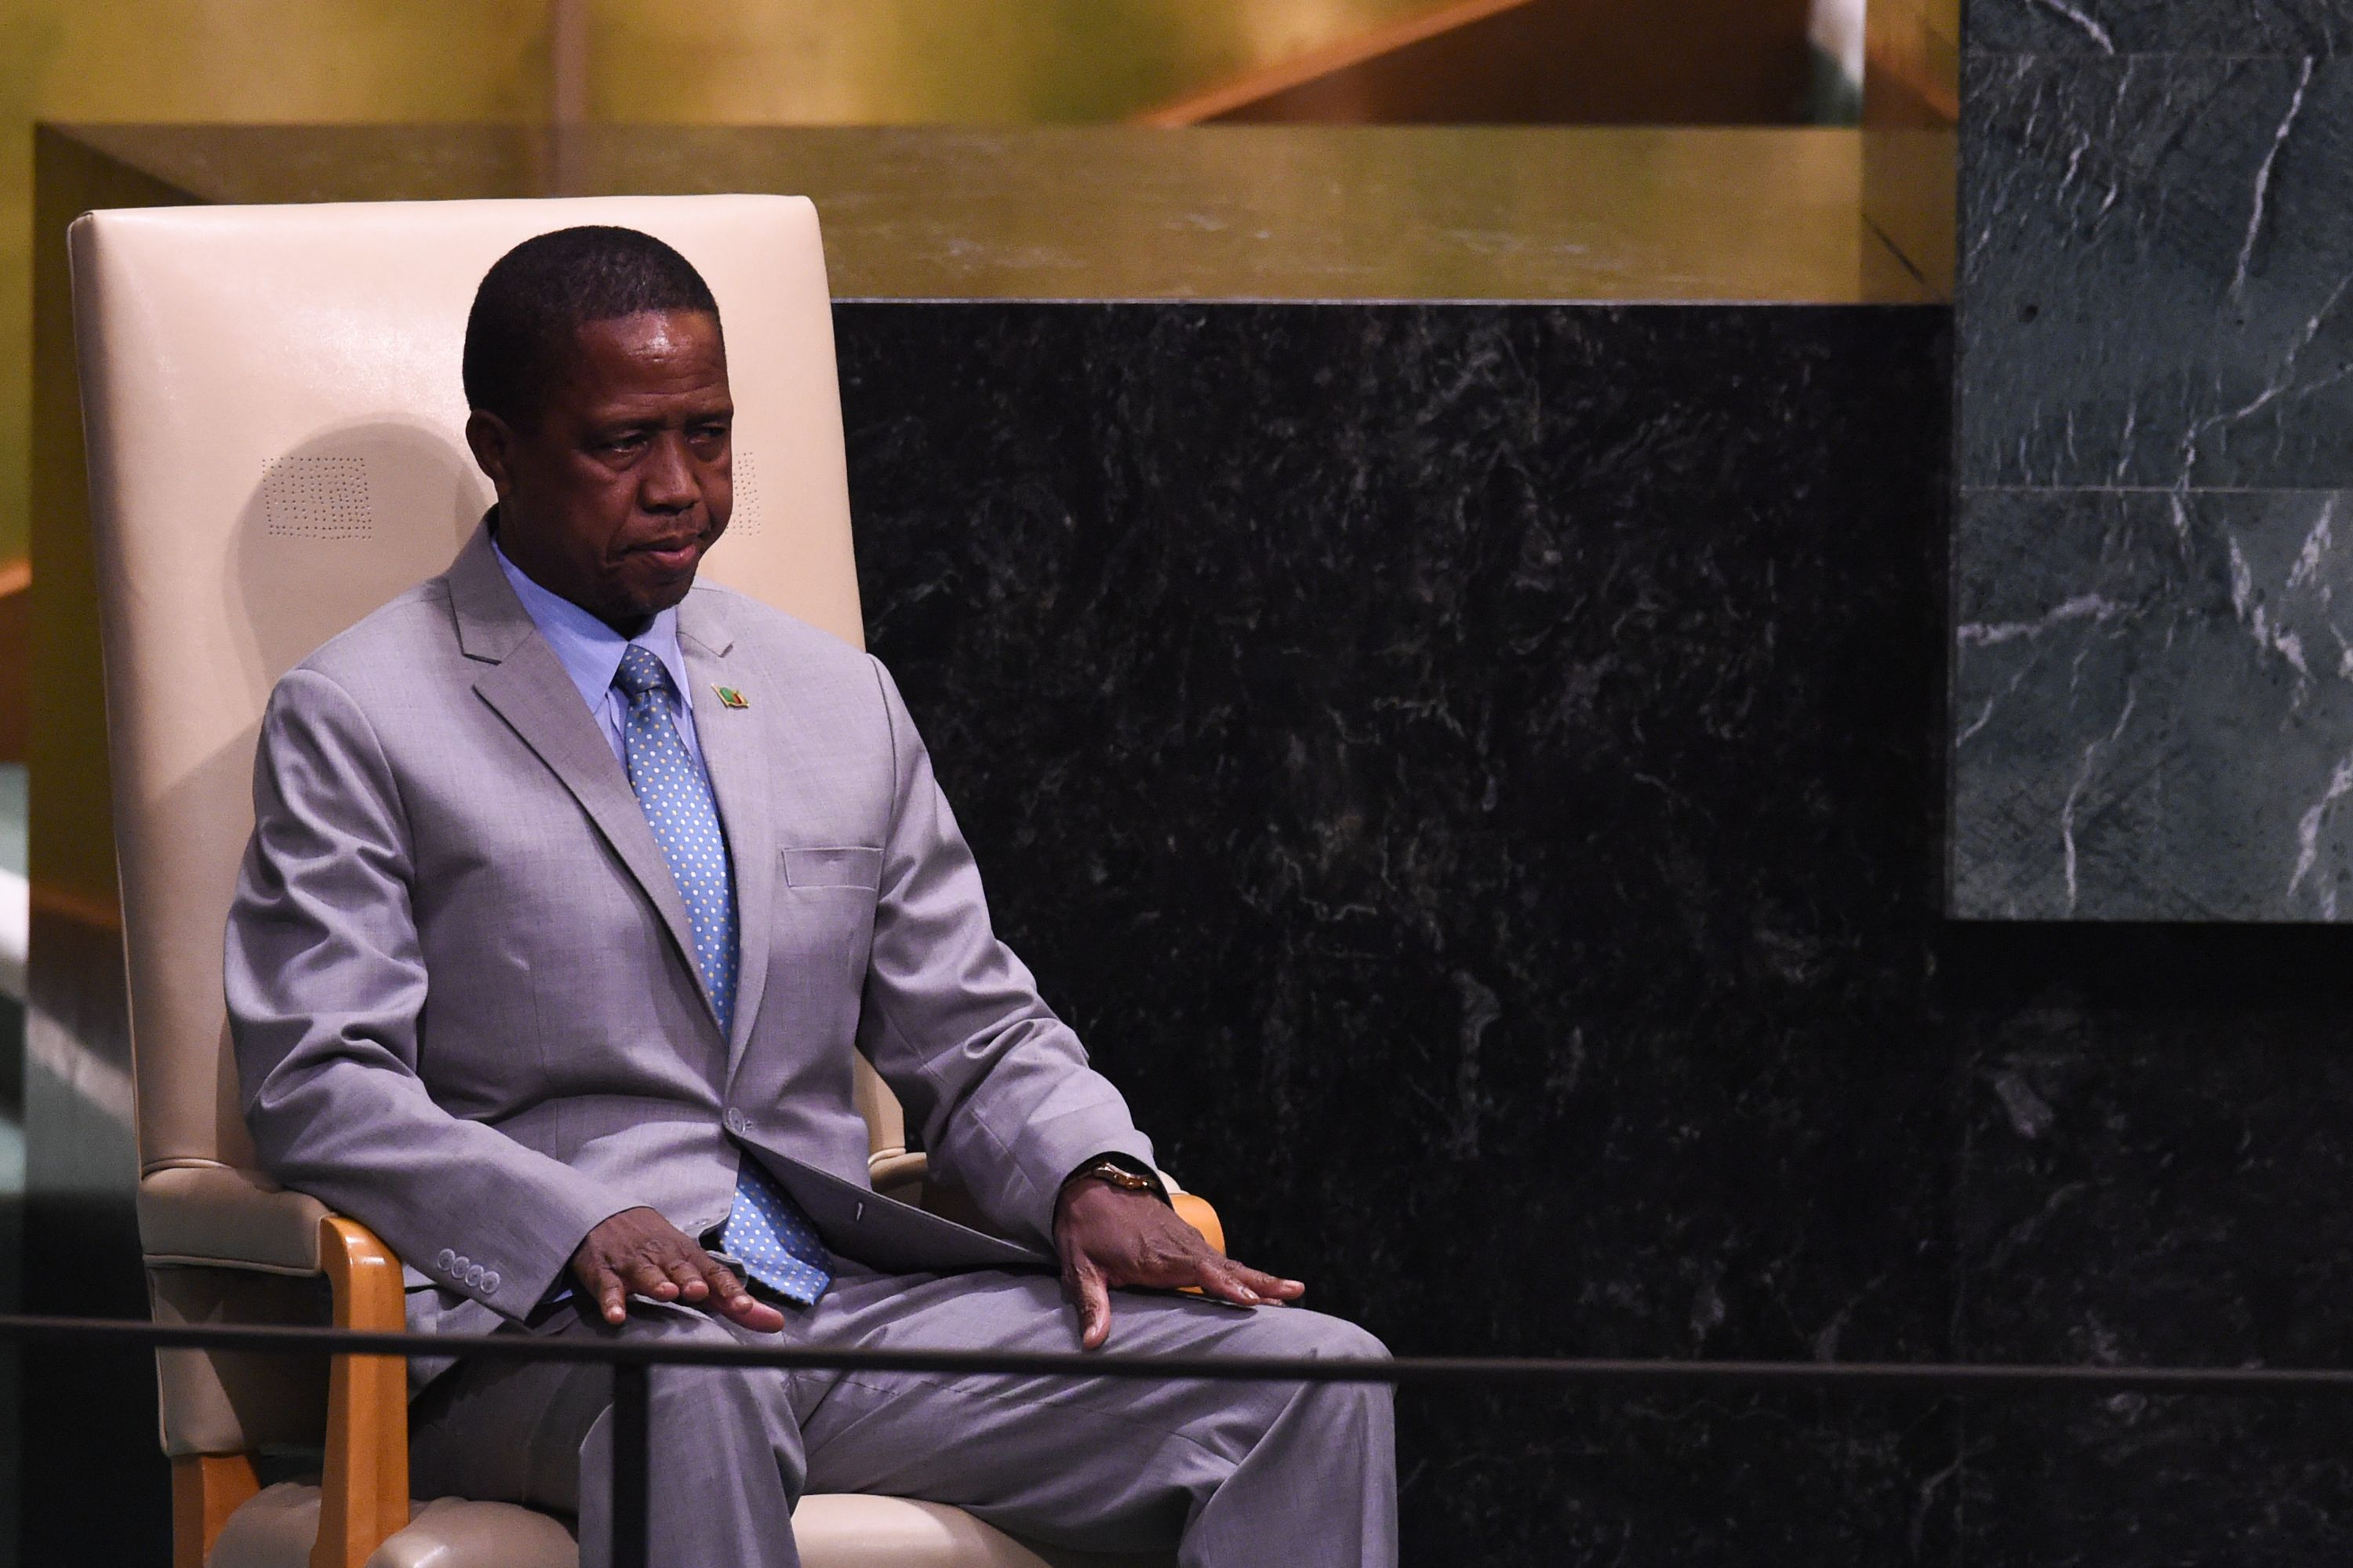 Zambian President Edgar Lungu waits to speak at the General Debate of the 73rd session of the General Assembly at the United Nations on Sept. 25, 2018 in New York.